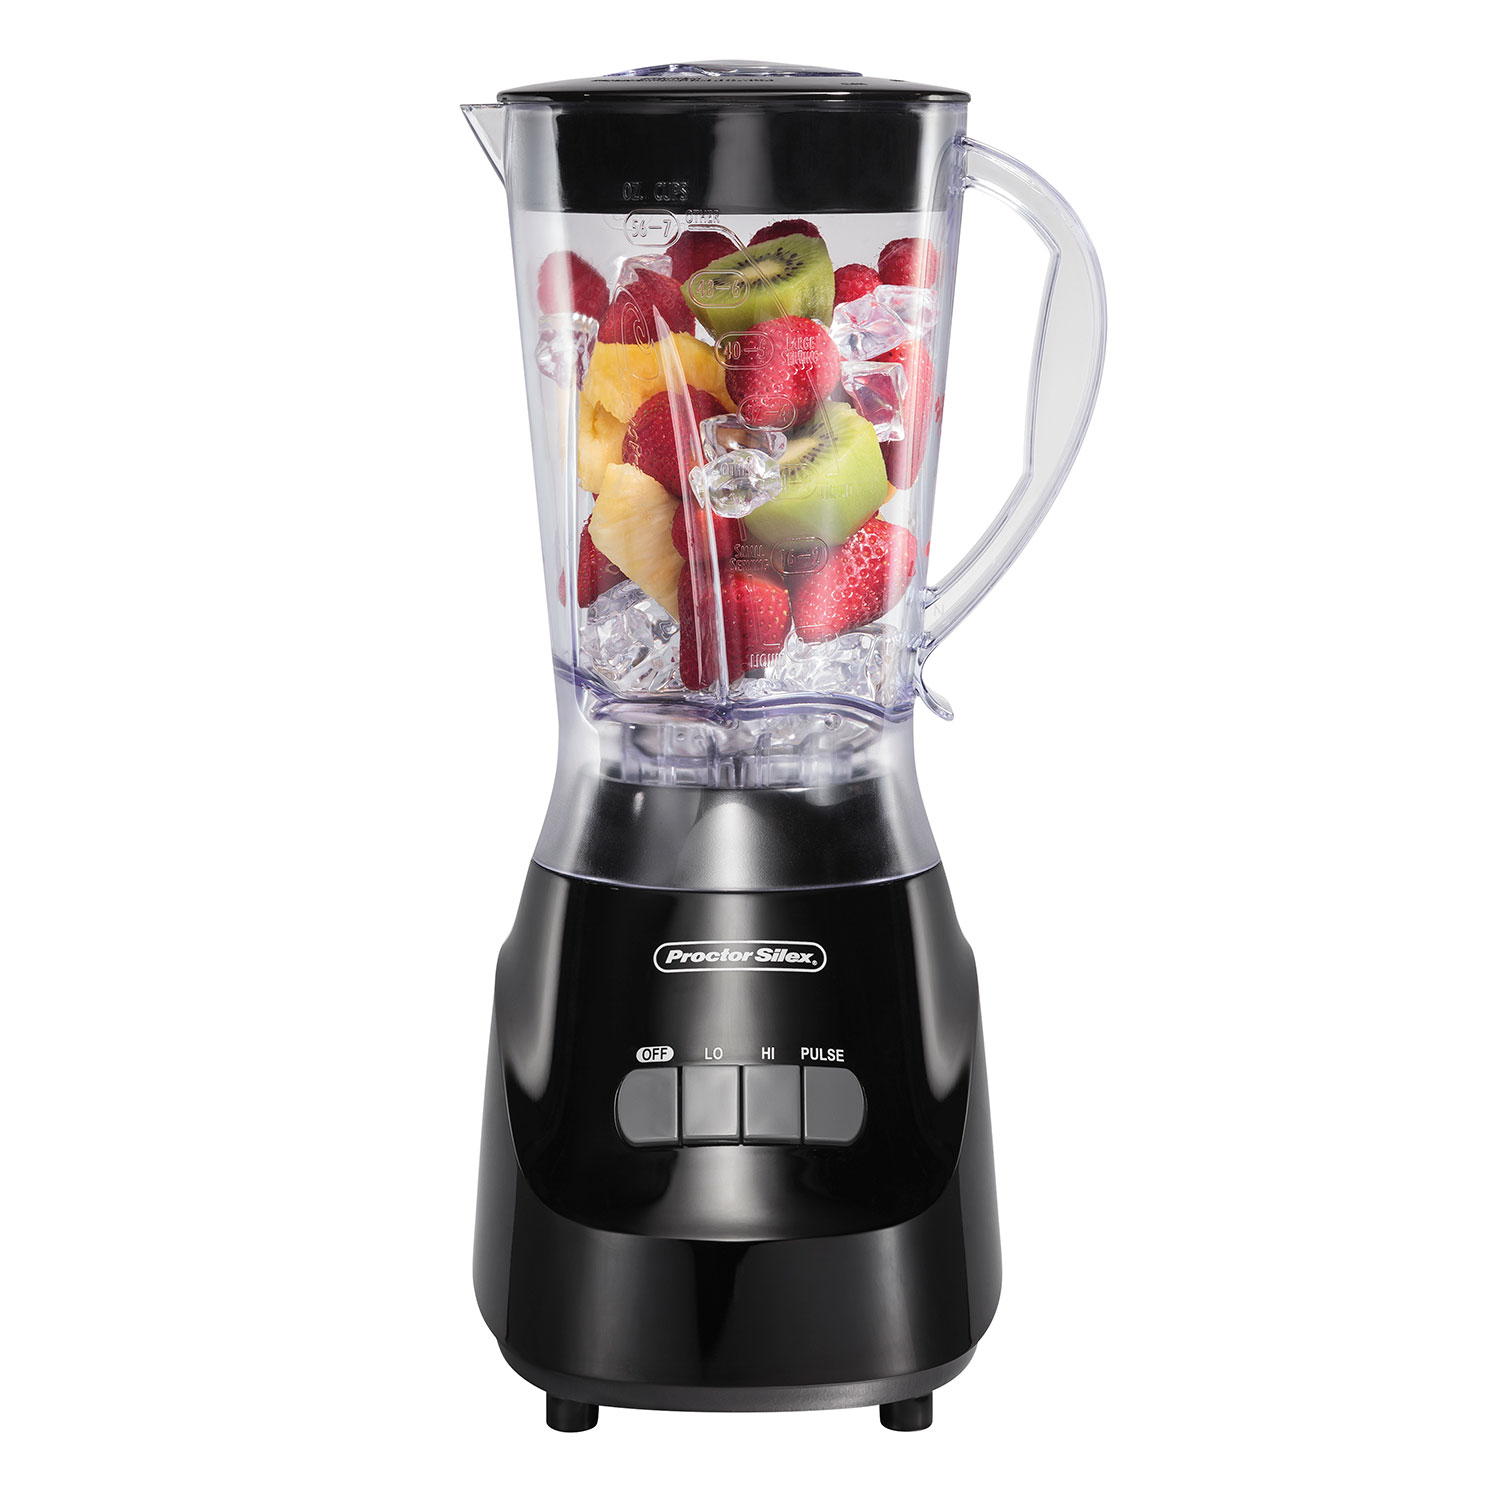 2 Speed Blender (black)-58137